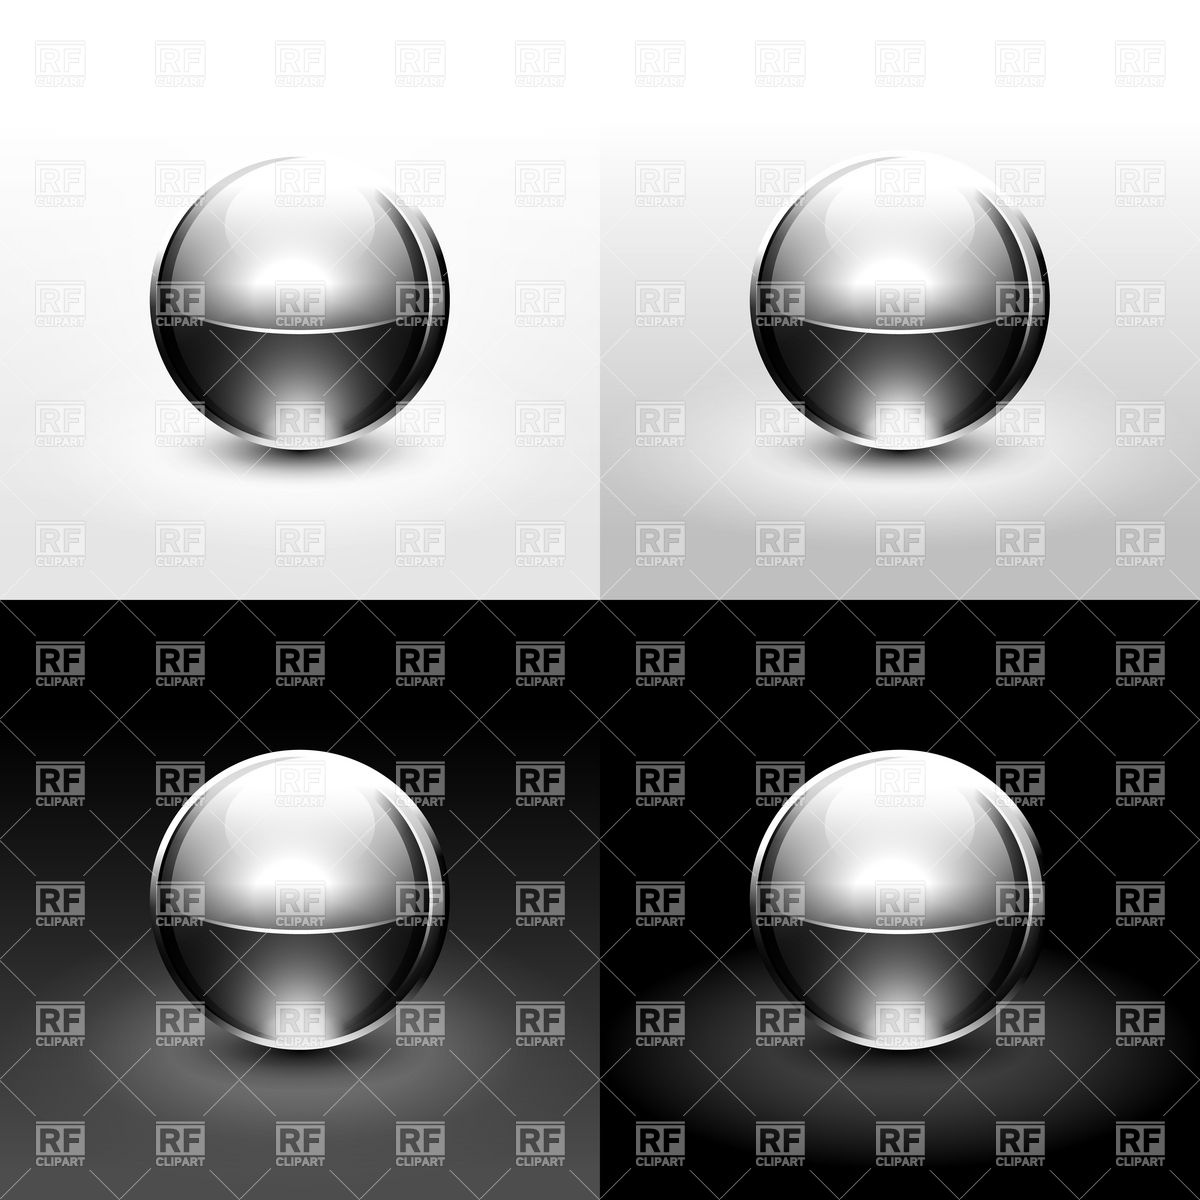 Silver metal glossy ball Vector Image #13174.